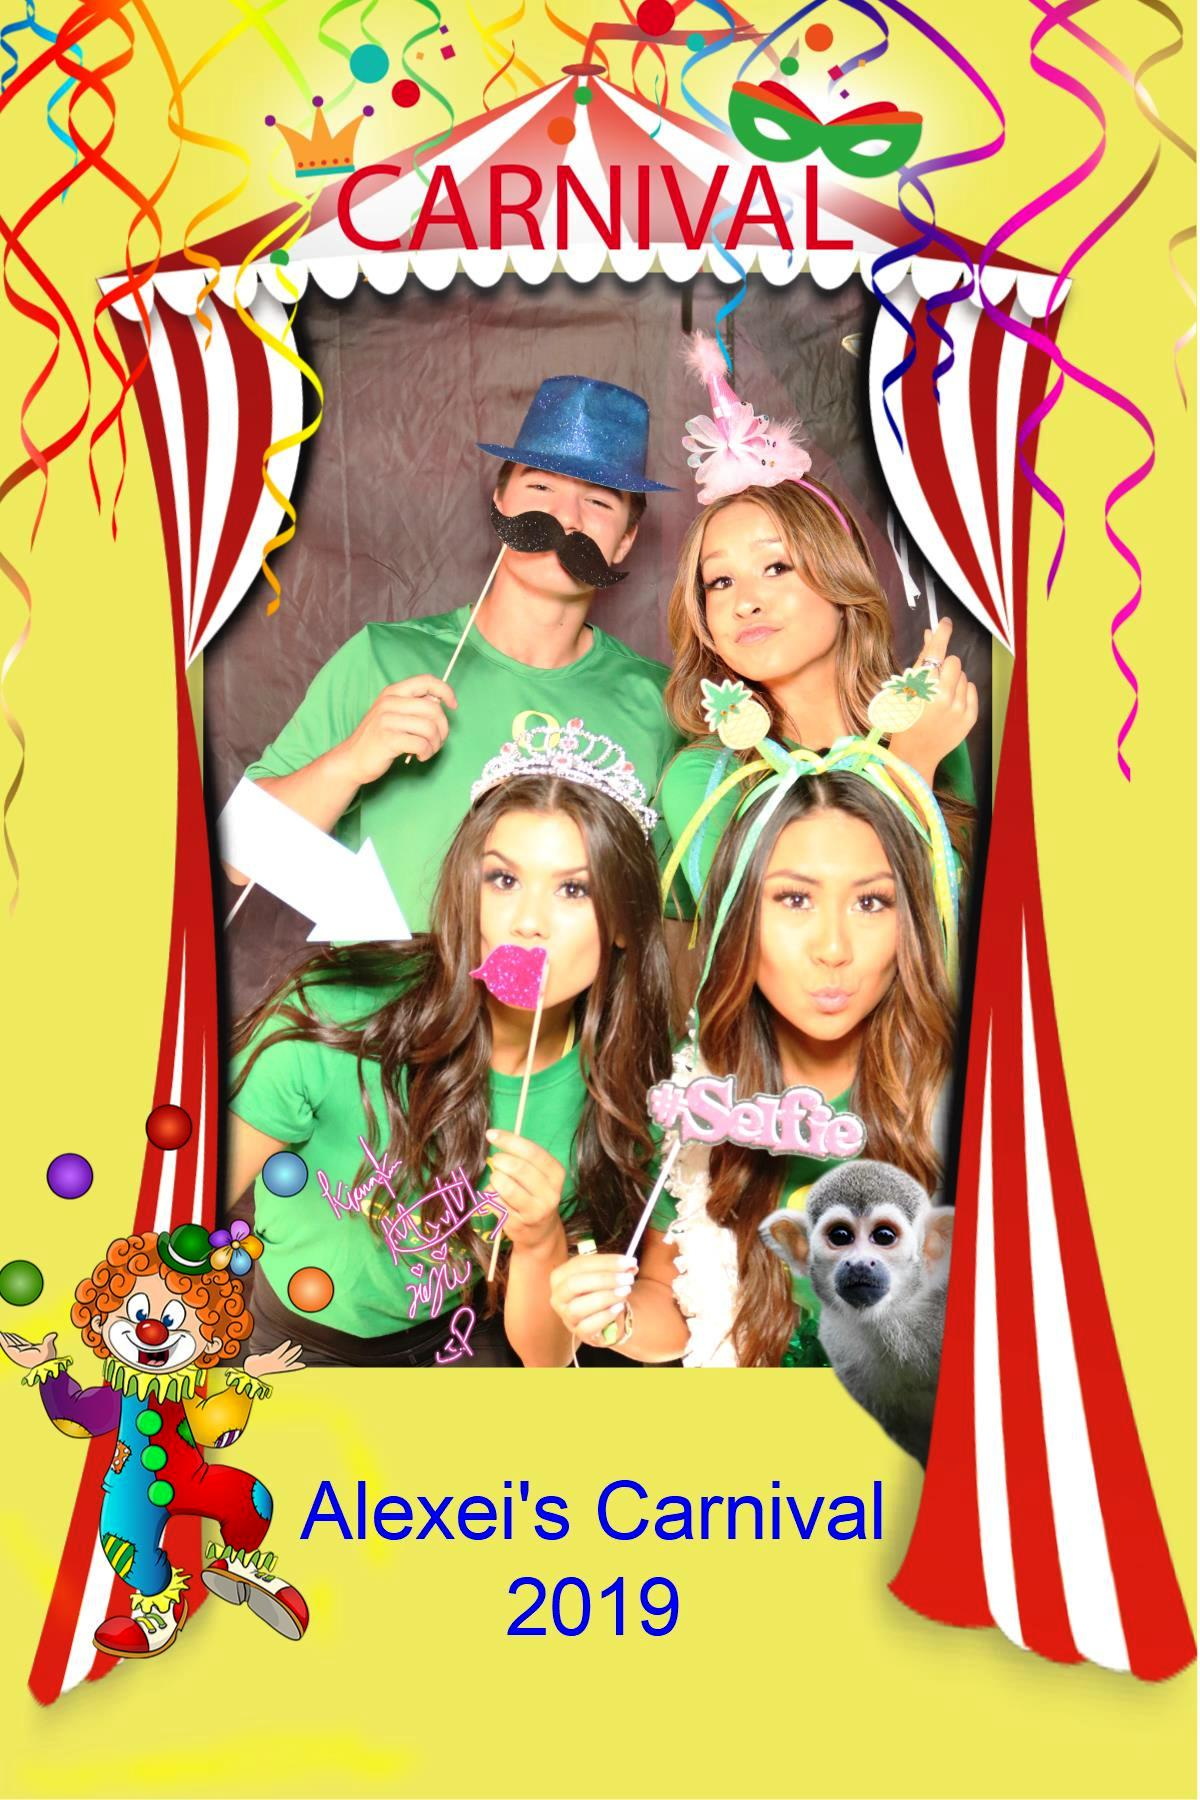 Party, magic mirror photo booth, events